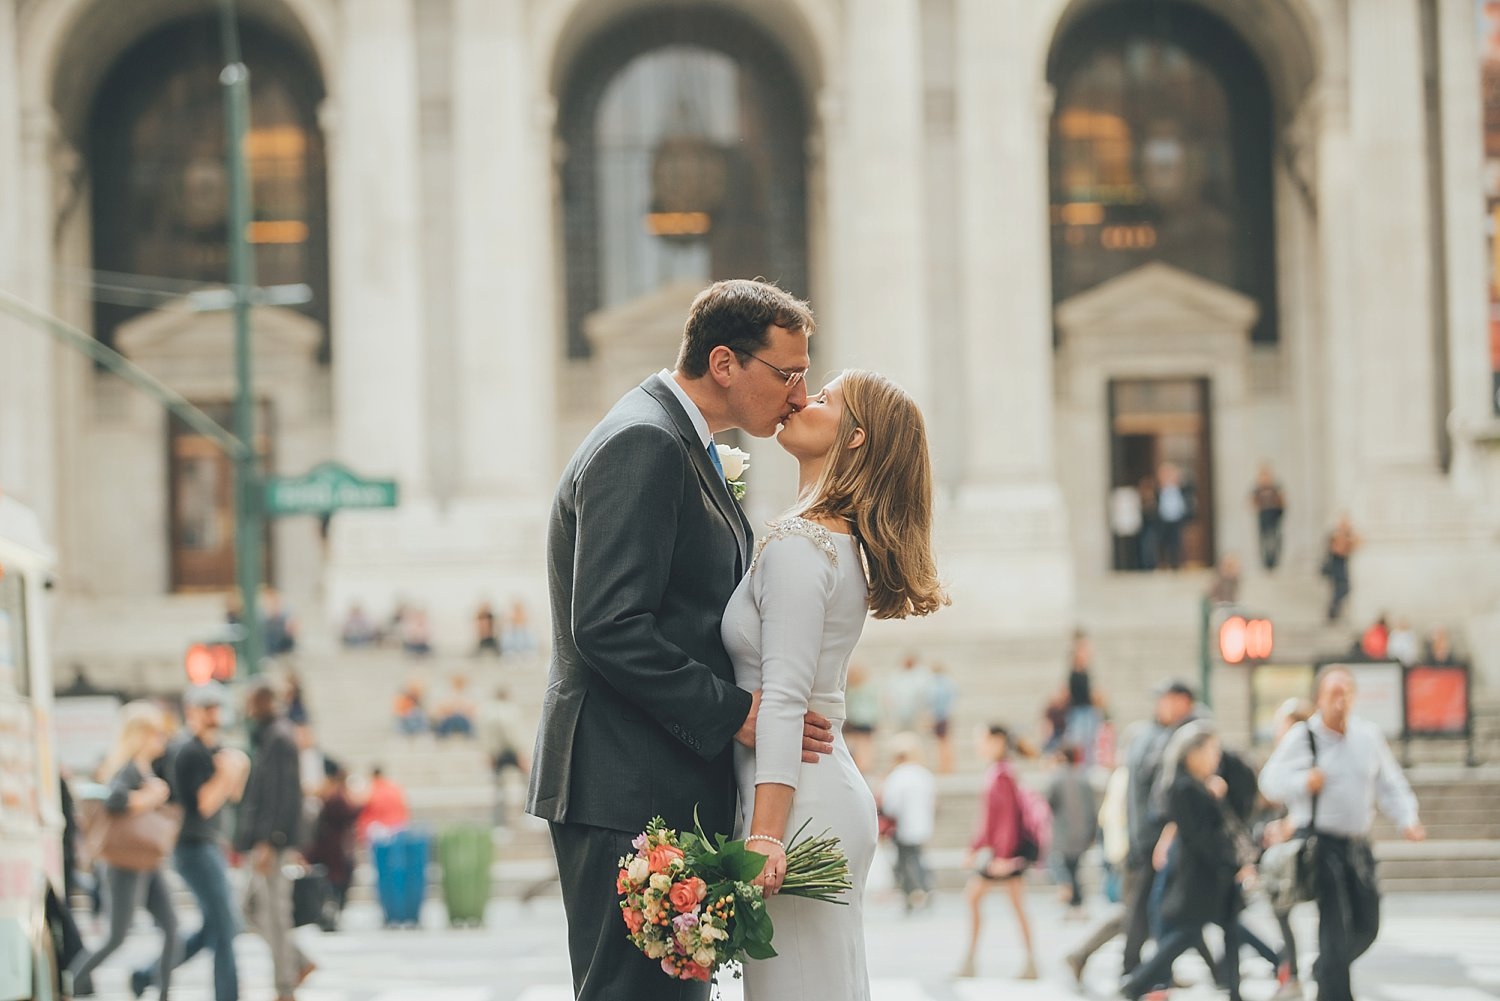 nyc-wedding-photography-nj-tri-state-cinematography-intothestory-by-moo-jae_0318.jpg